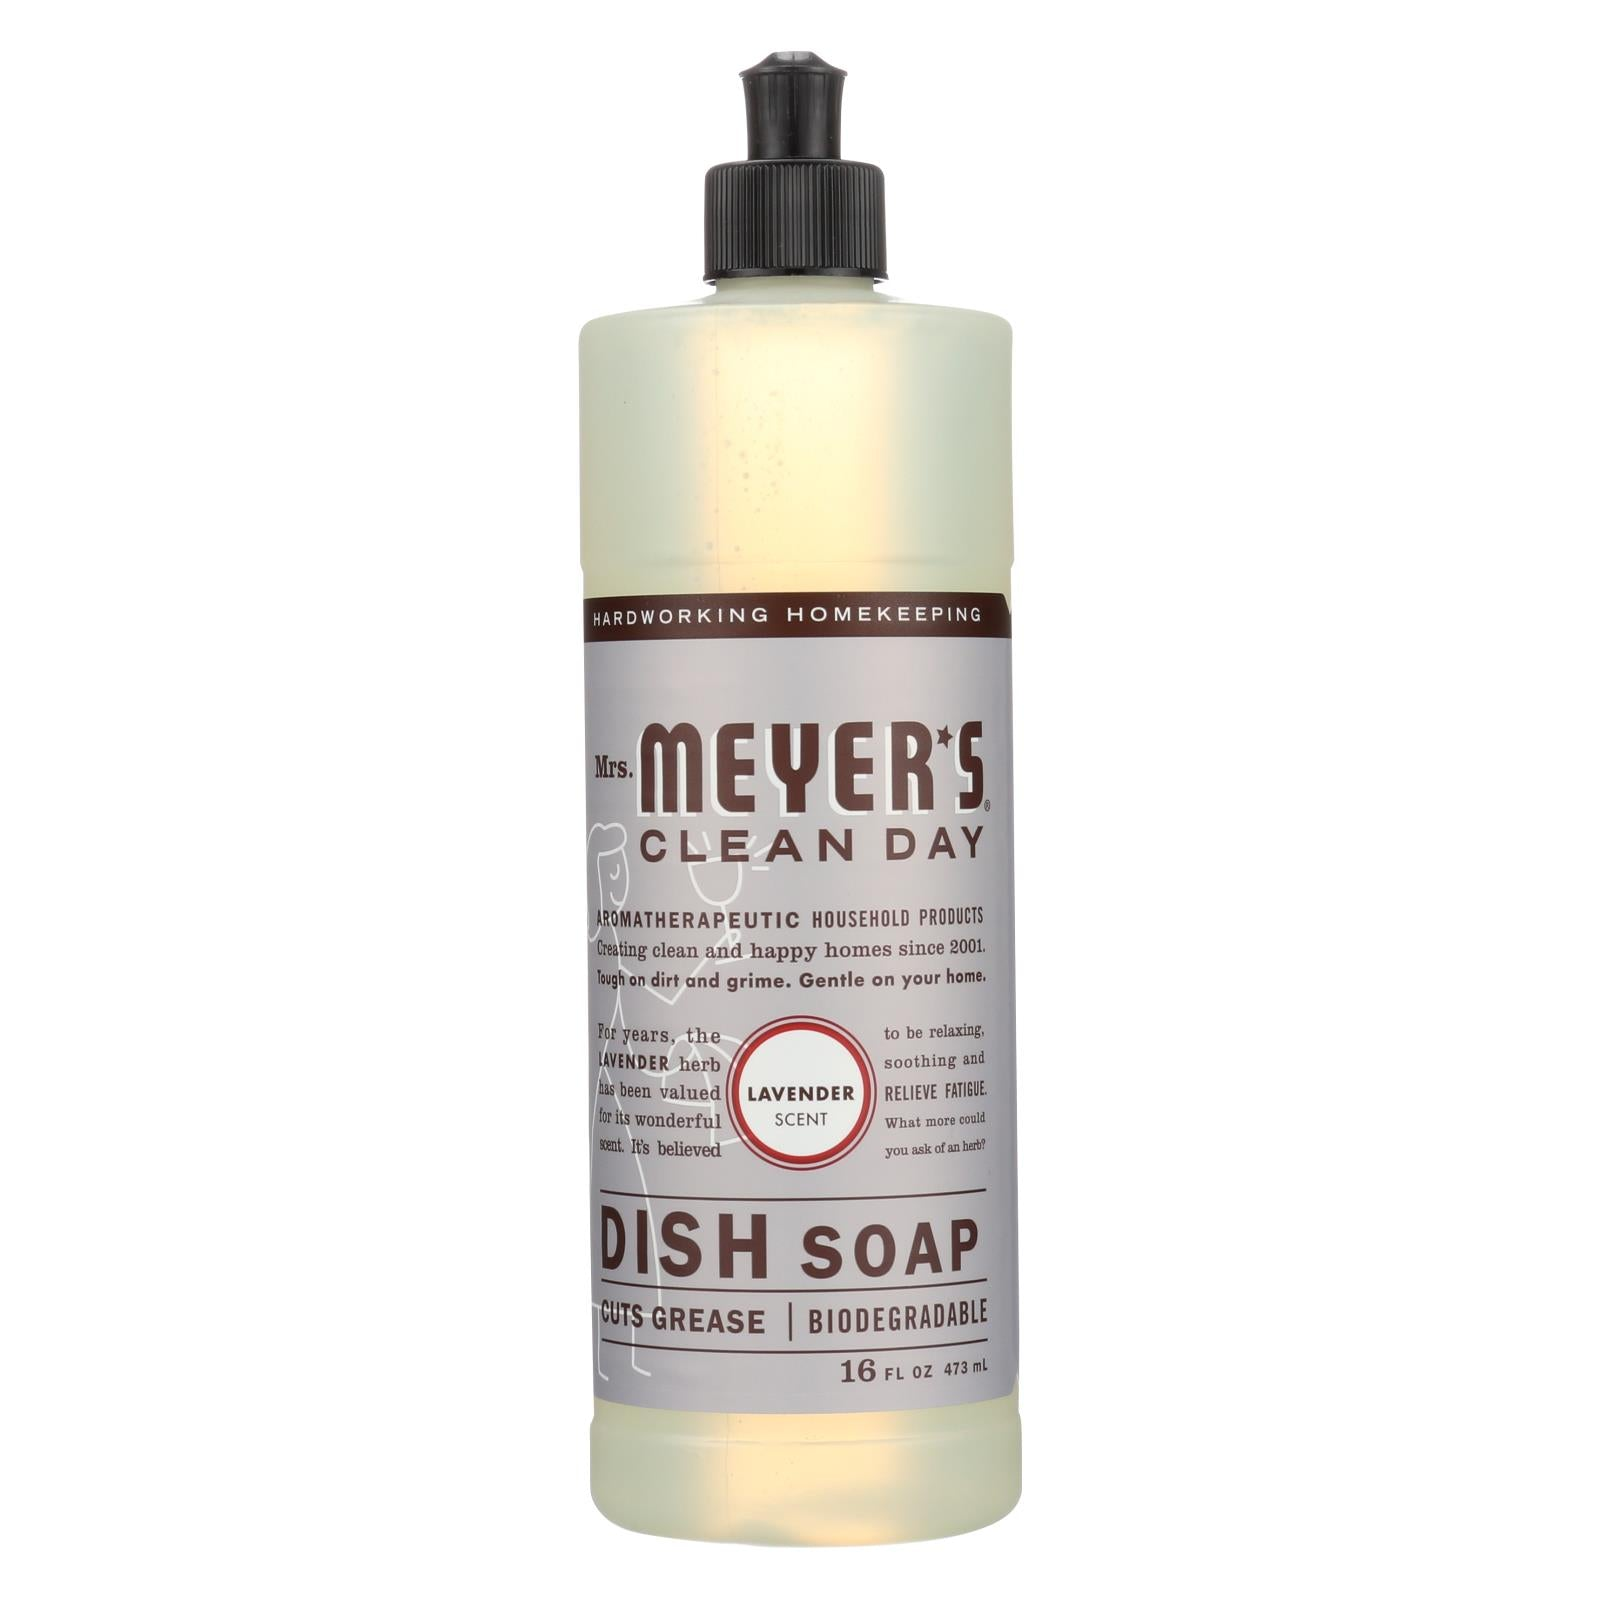 Buy Mrs. Meyer's Clean Day - Liquid Dish Soap - Lavender - 16 oz - Dishwashing from Veroeco.com